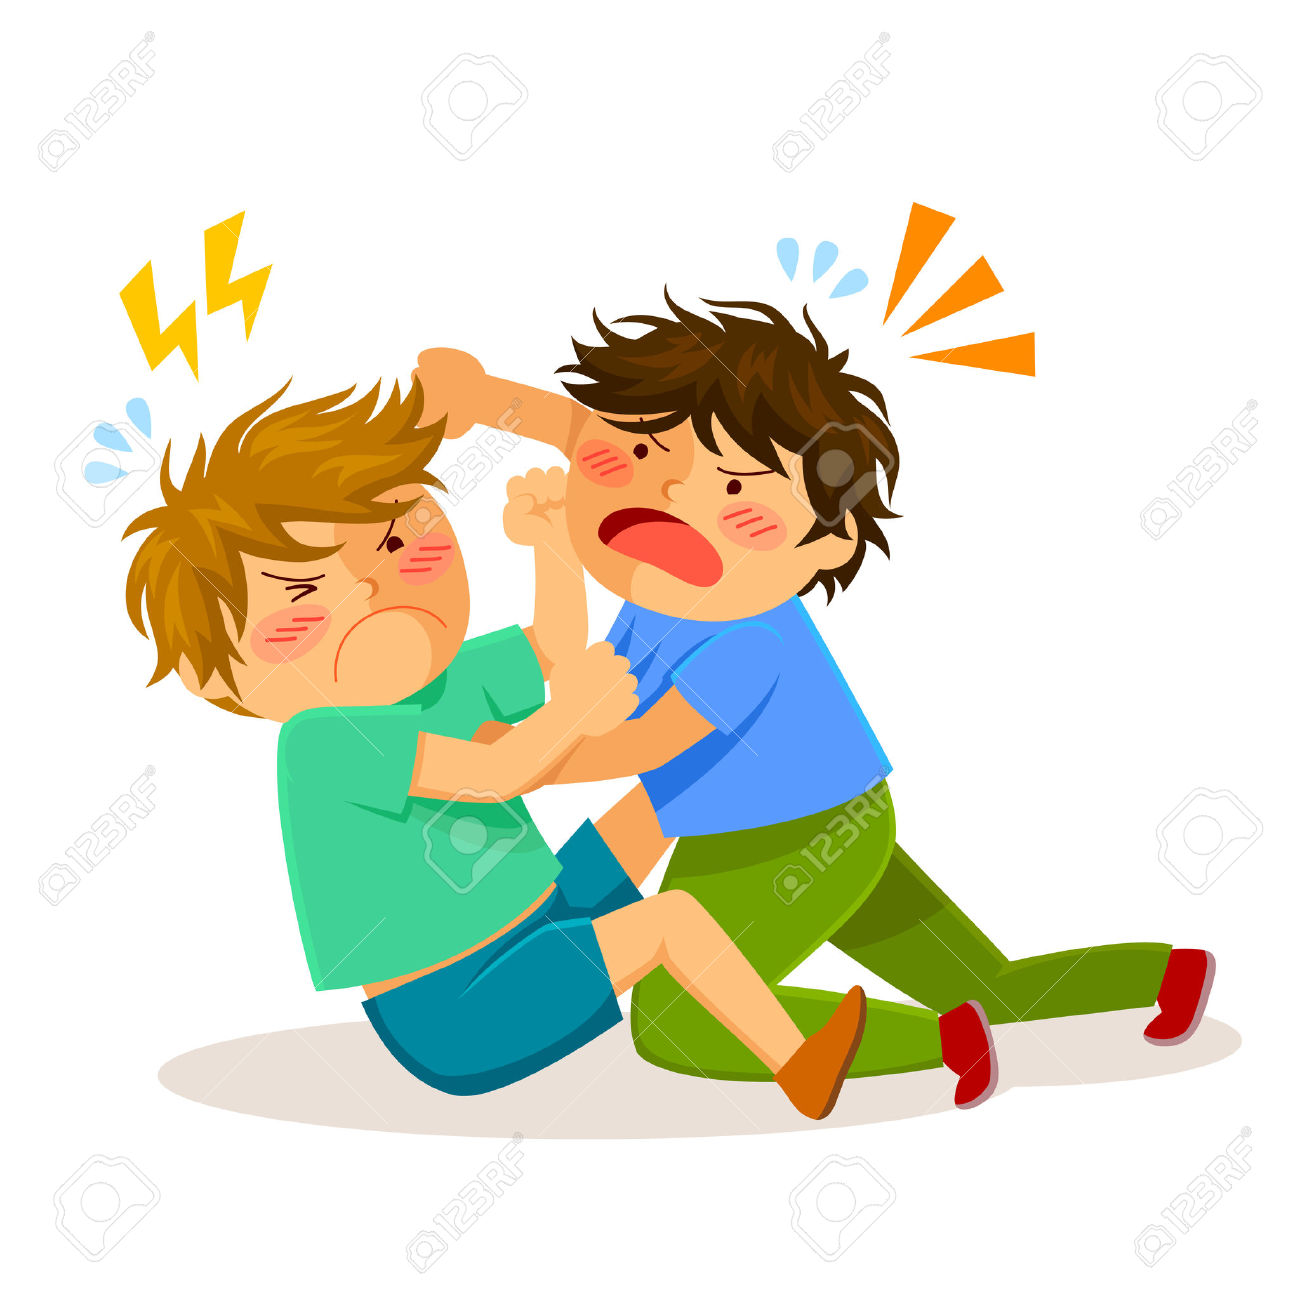 Fighting clipart hits, Fighting hits Transparent FREE for.